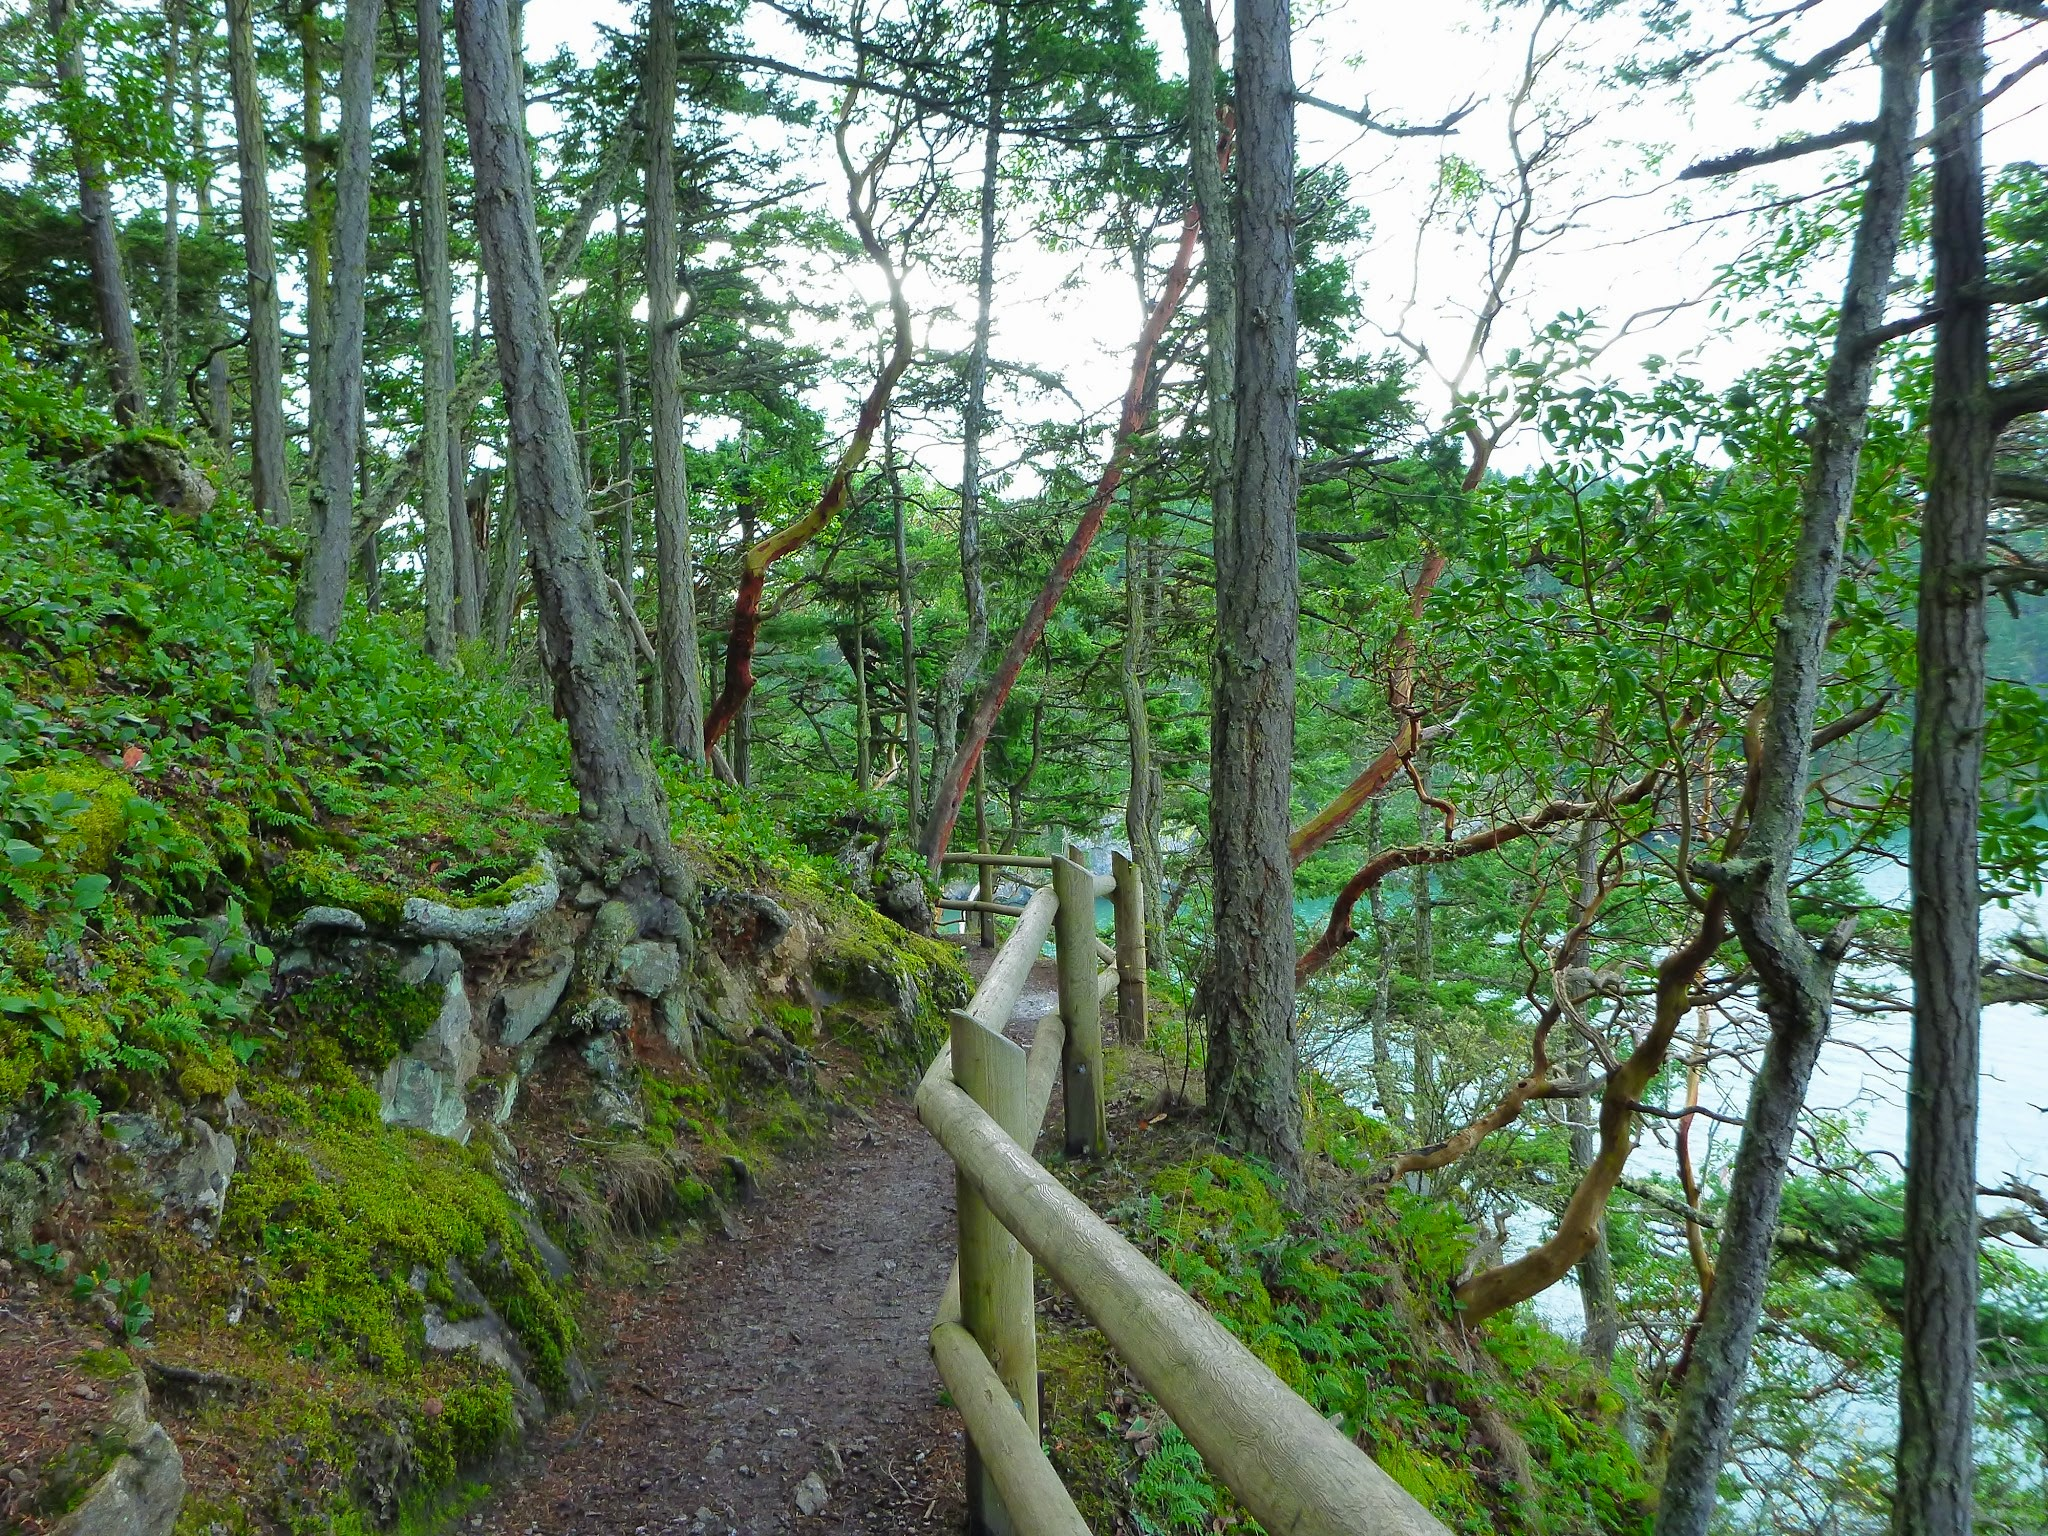 Trees are along the sides of a trail on a bluff. There's a wooden railing and water can be seen through the trees